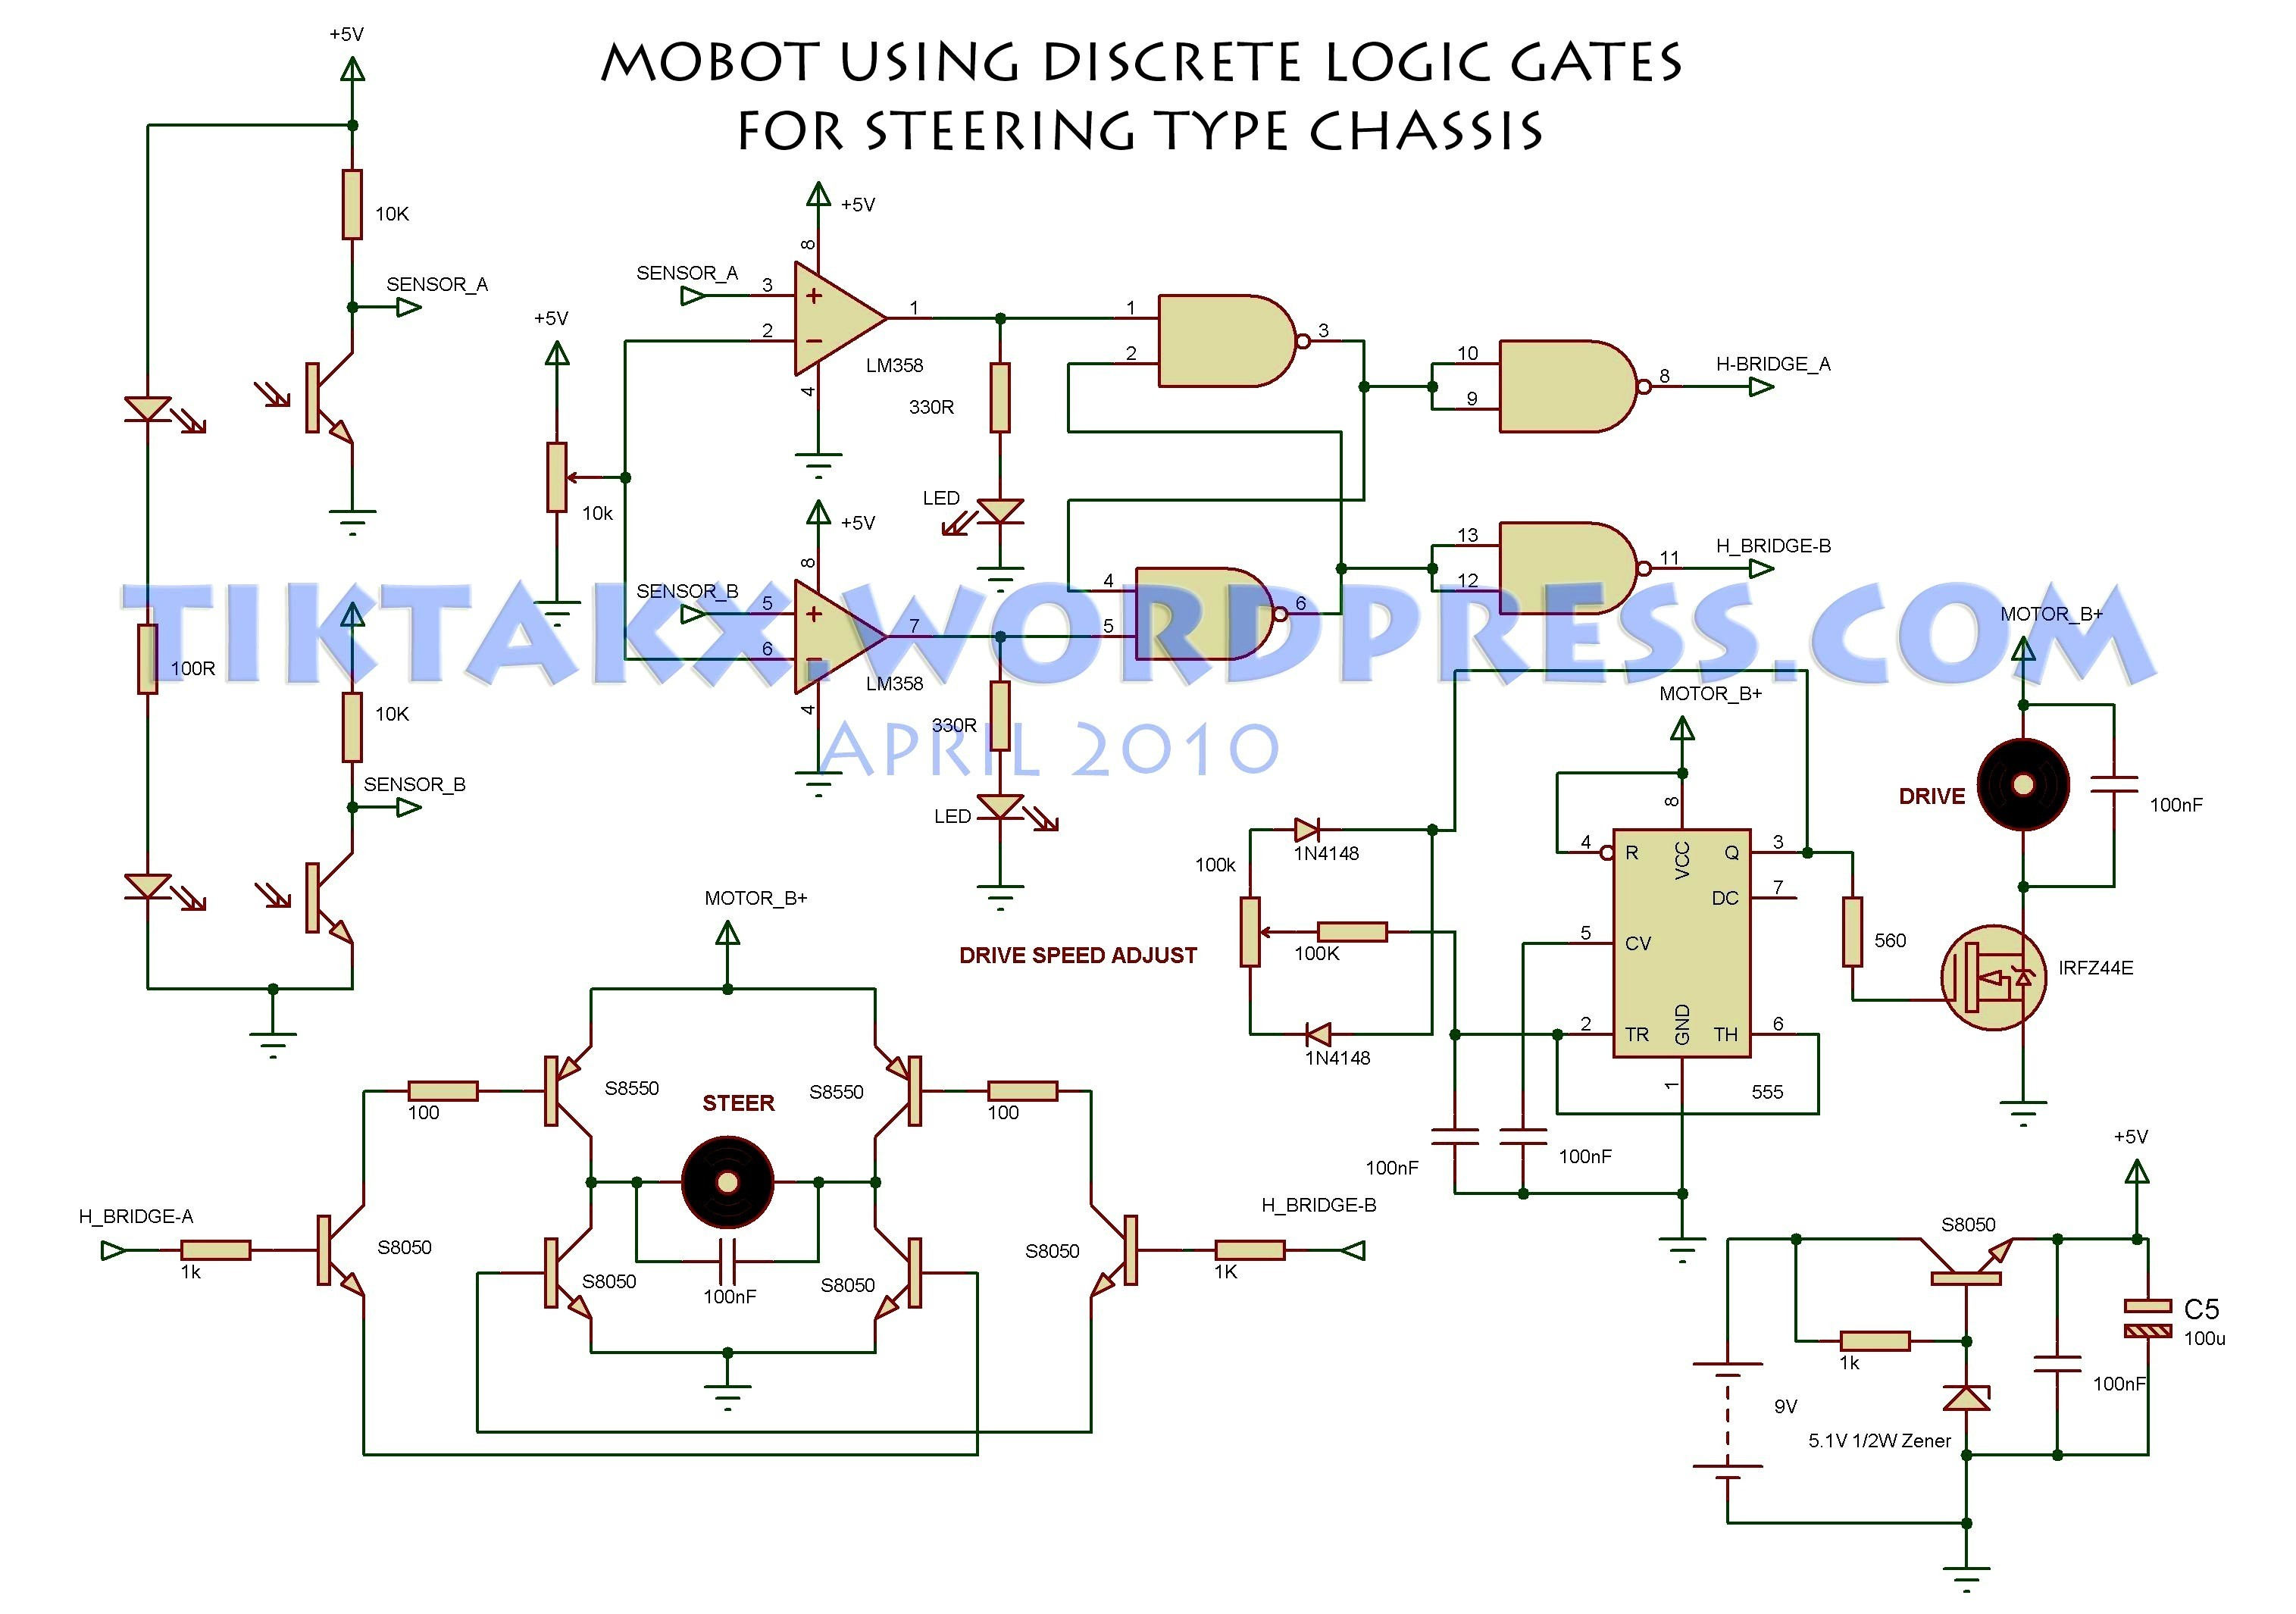 Toy Car Circuit Diagram Electric toy Car Wiring Diagram Of Toy Car Circuit Diagram Wireless Remote Control Car Circuit Diagram Wireless toy Car Circuit